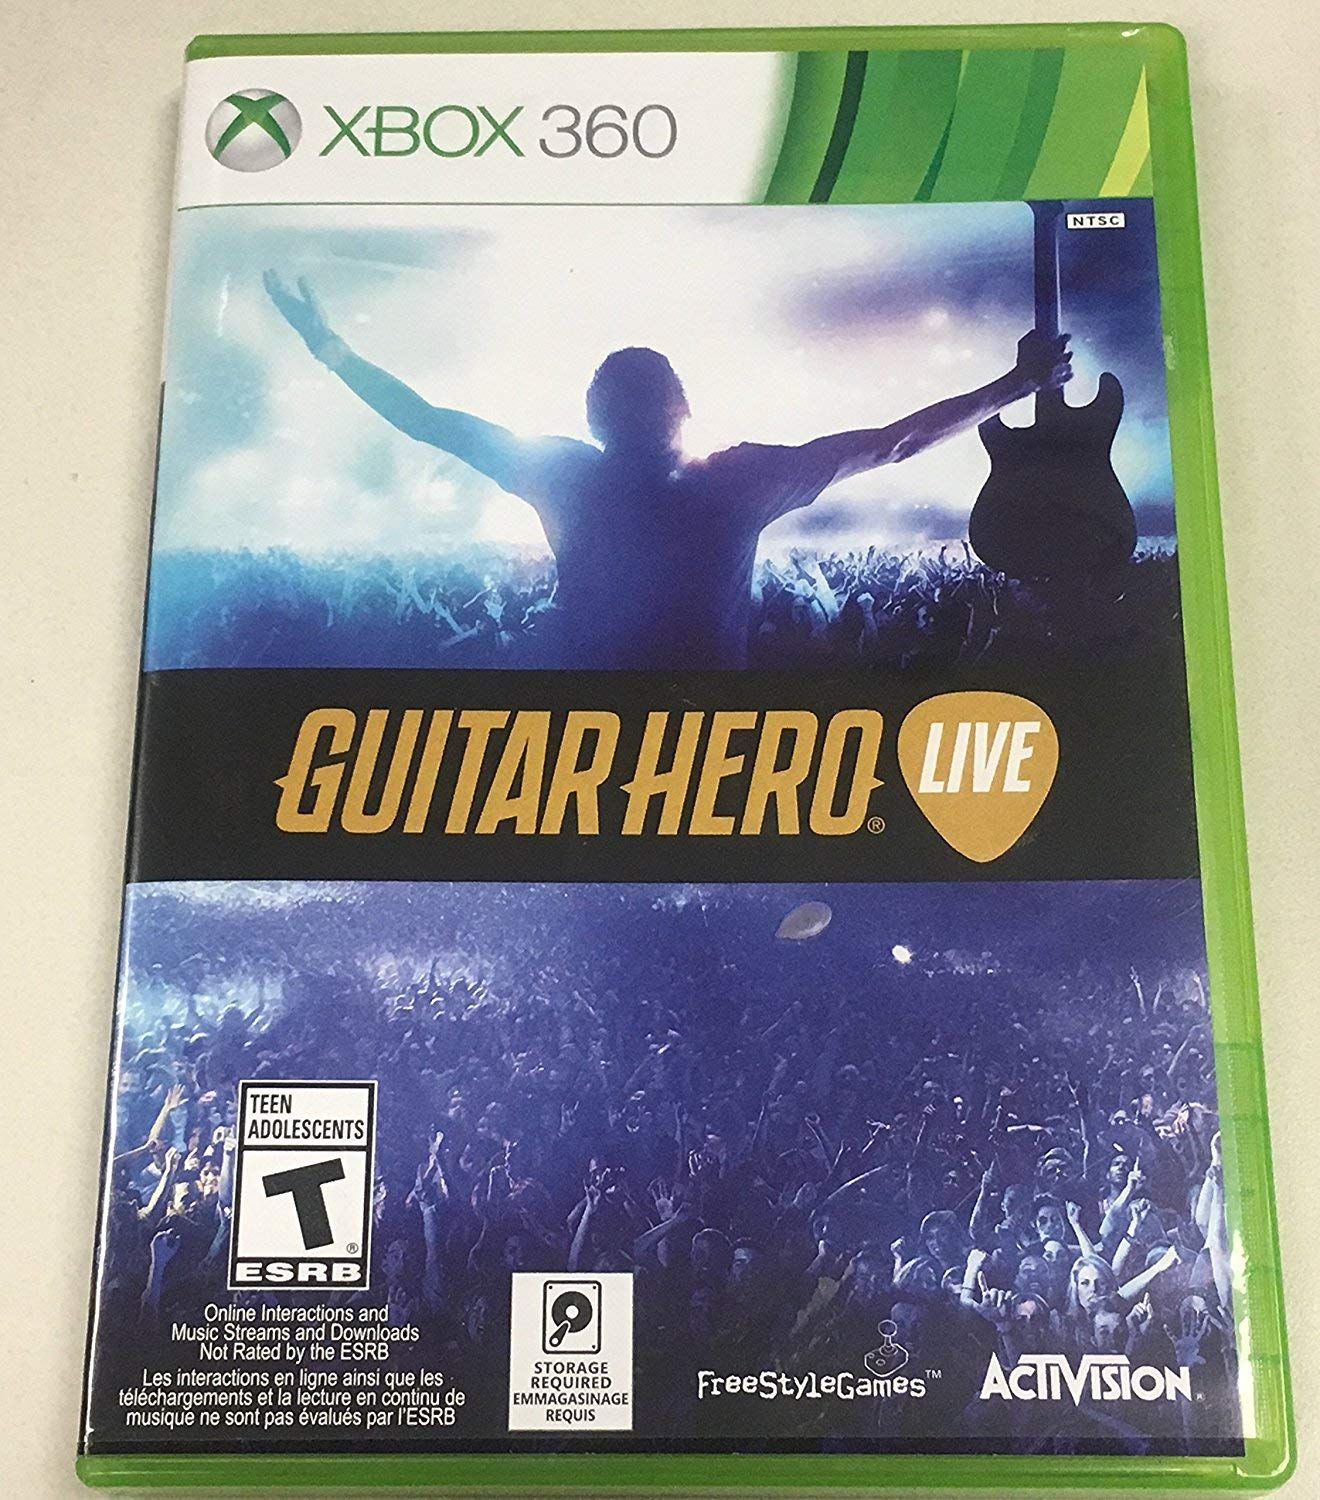 Guitar Hero Live 2-Pack Bundle - Xbox 360 by Activision. (Image #1)